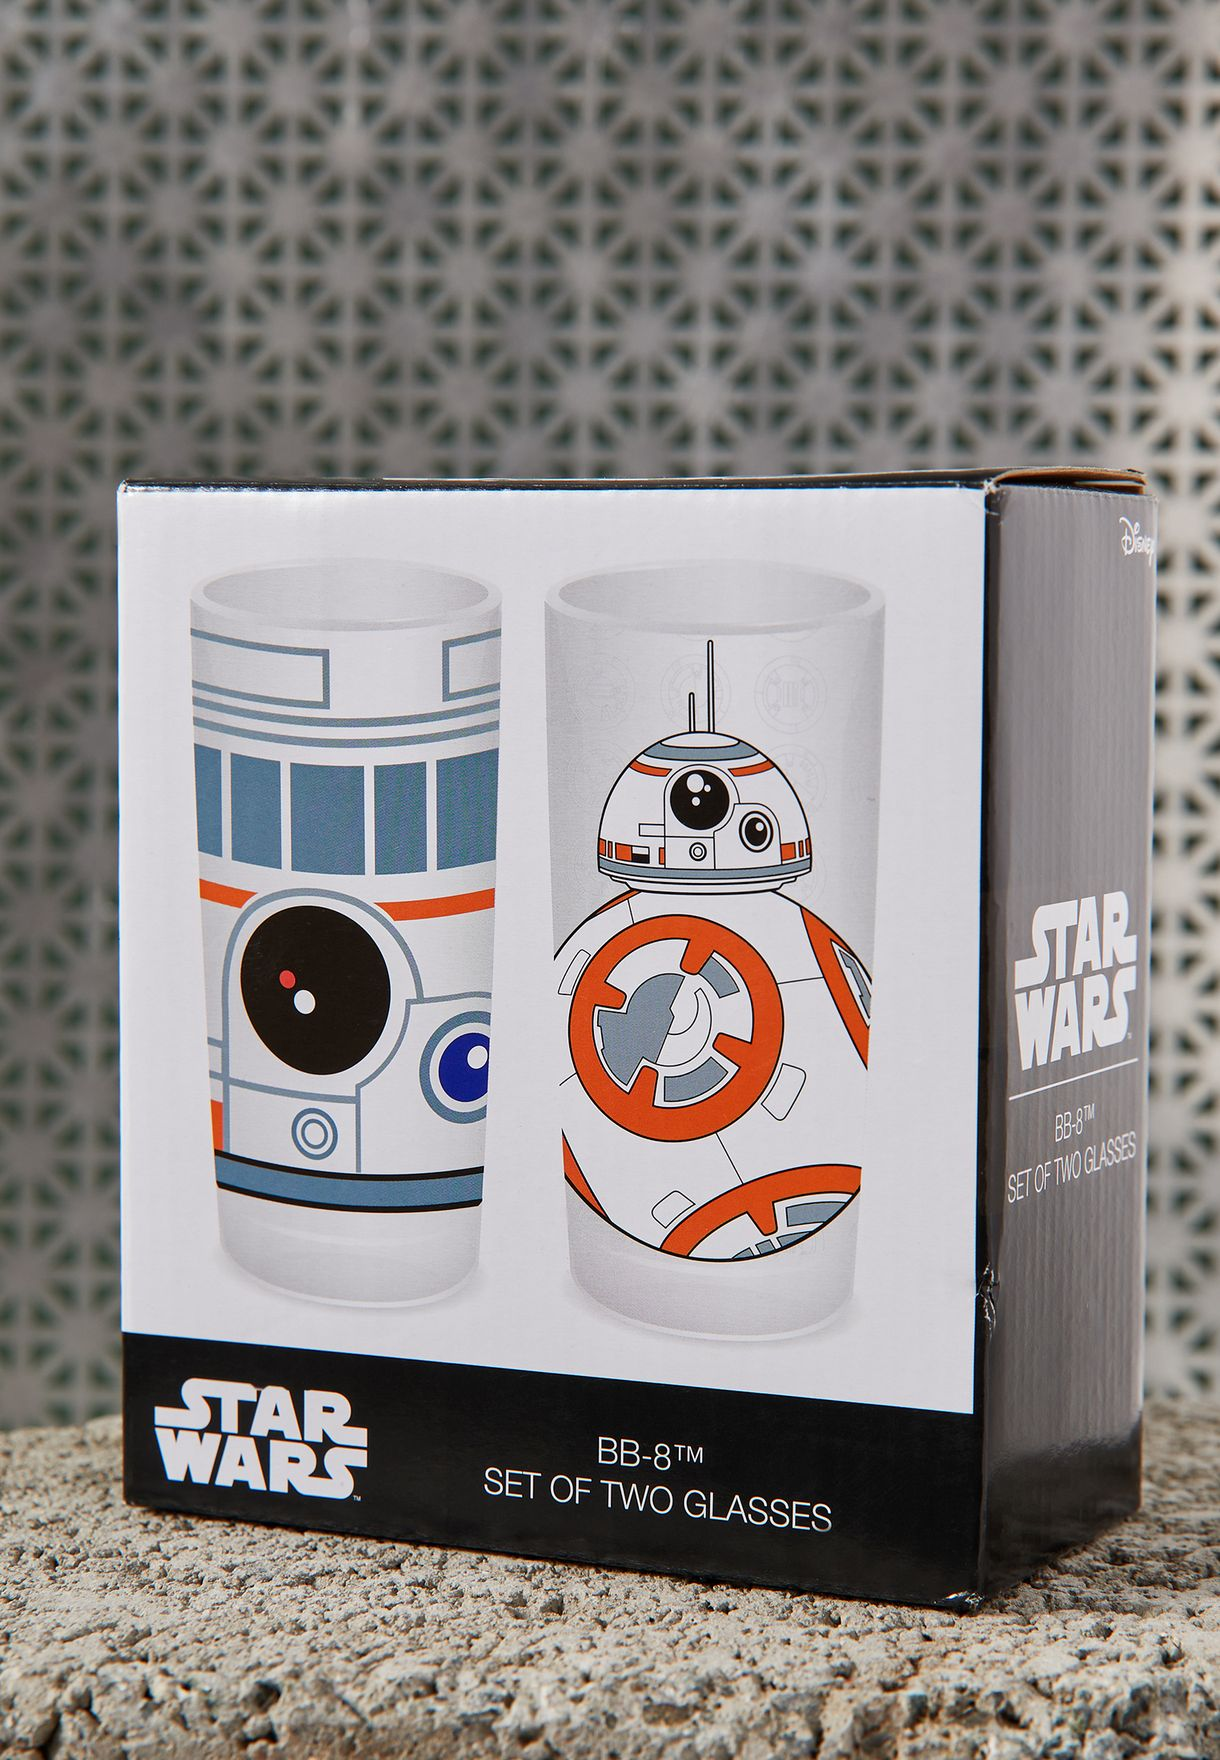 Set Of 2 Star Wars BB-8 Glass